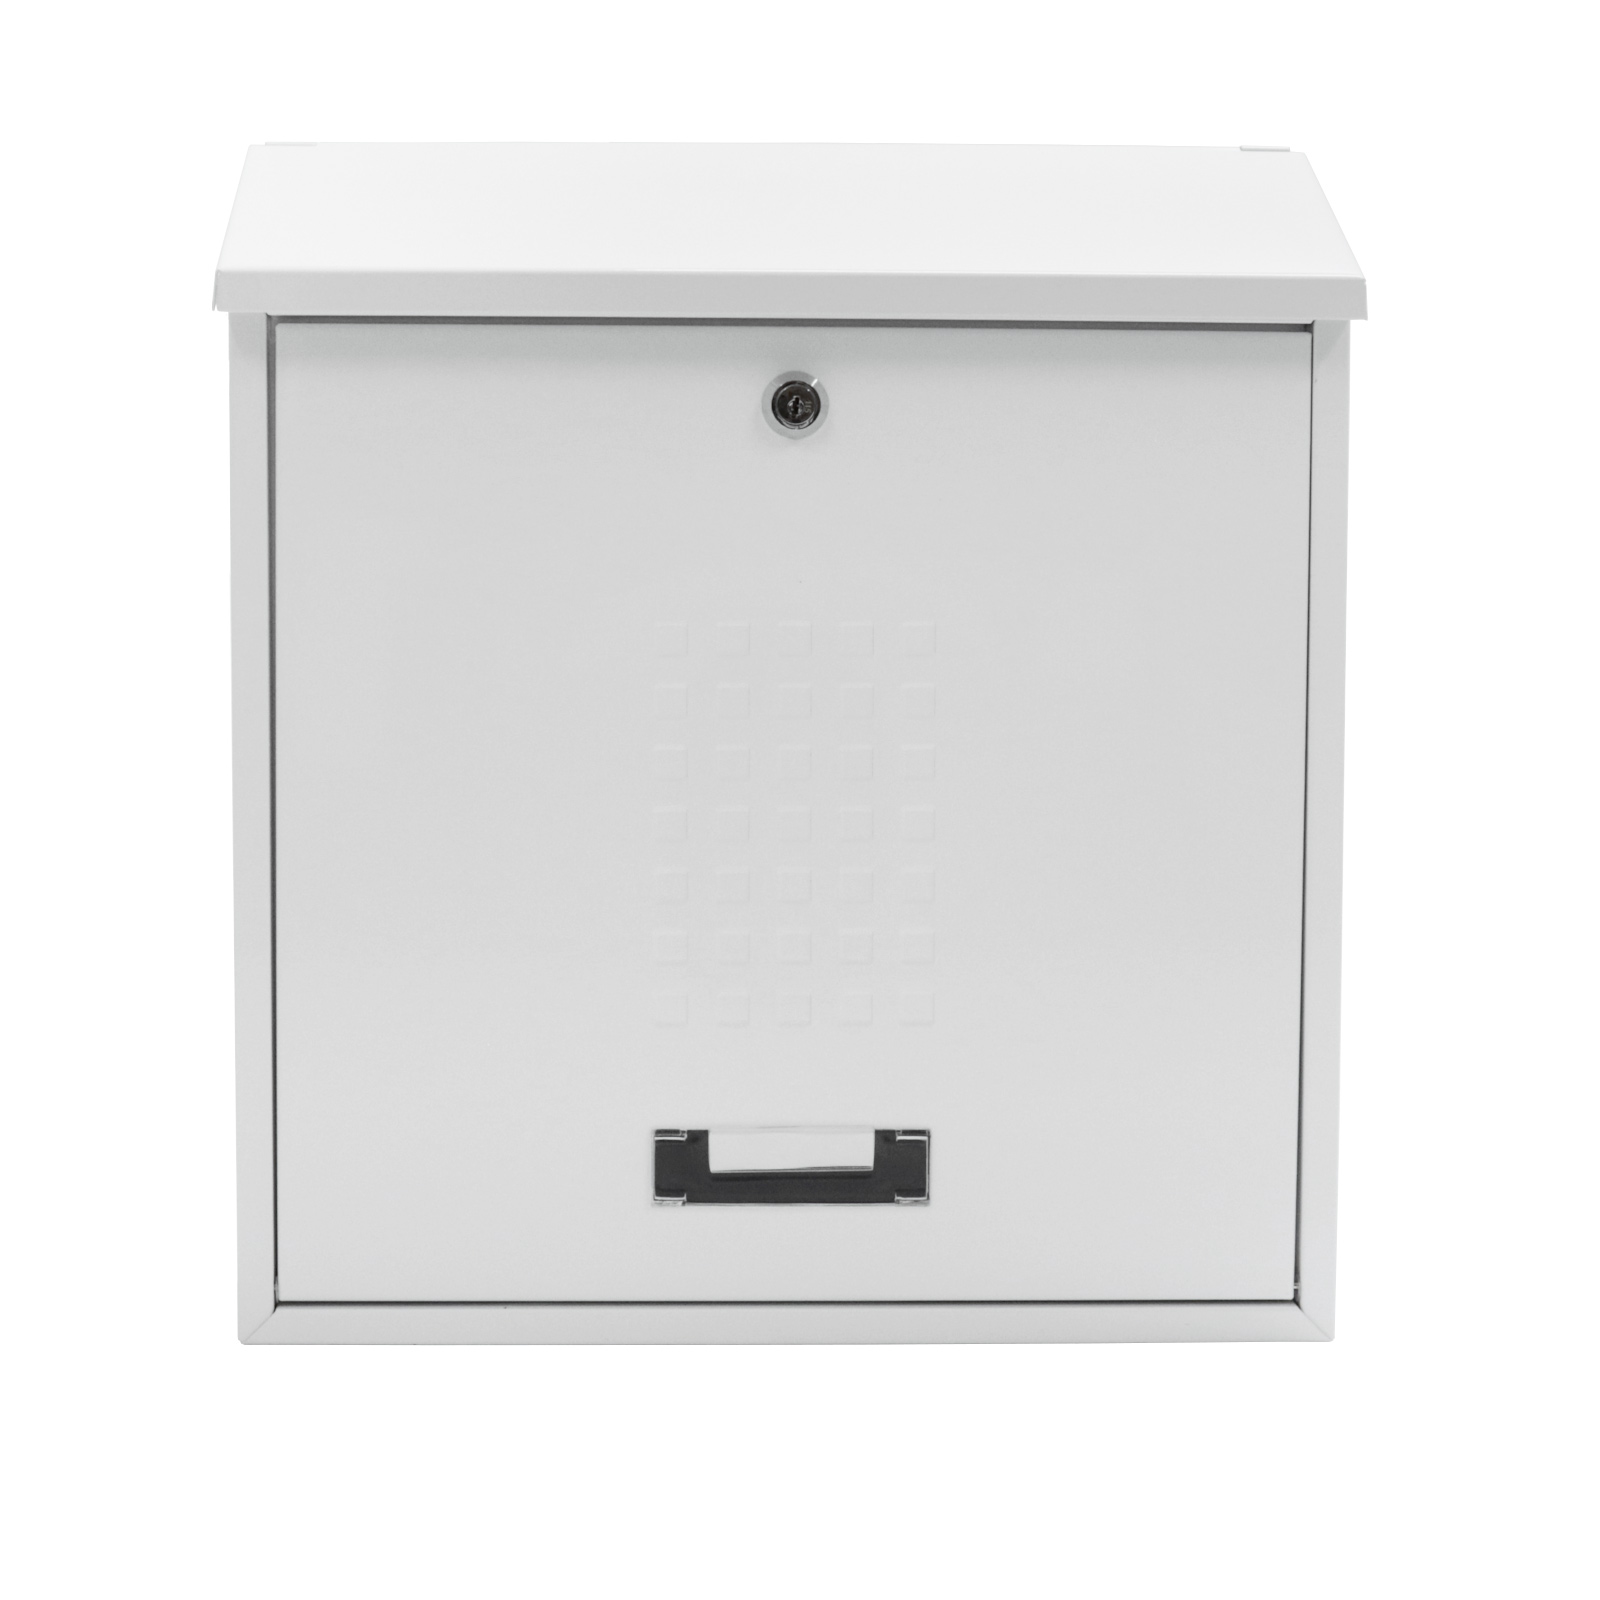 Pro First Mailbox 310 Post Box White